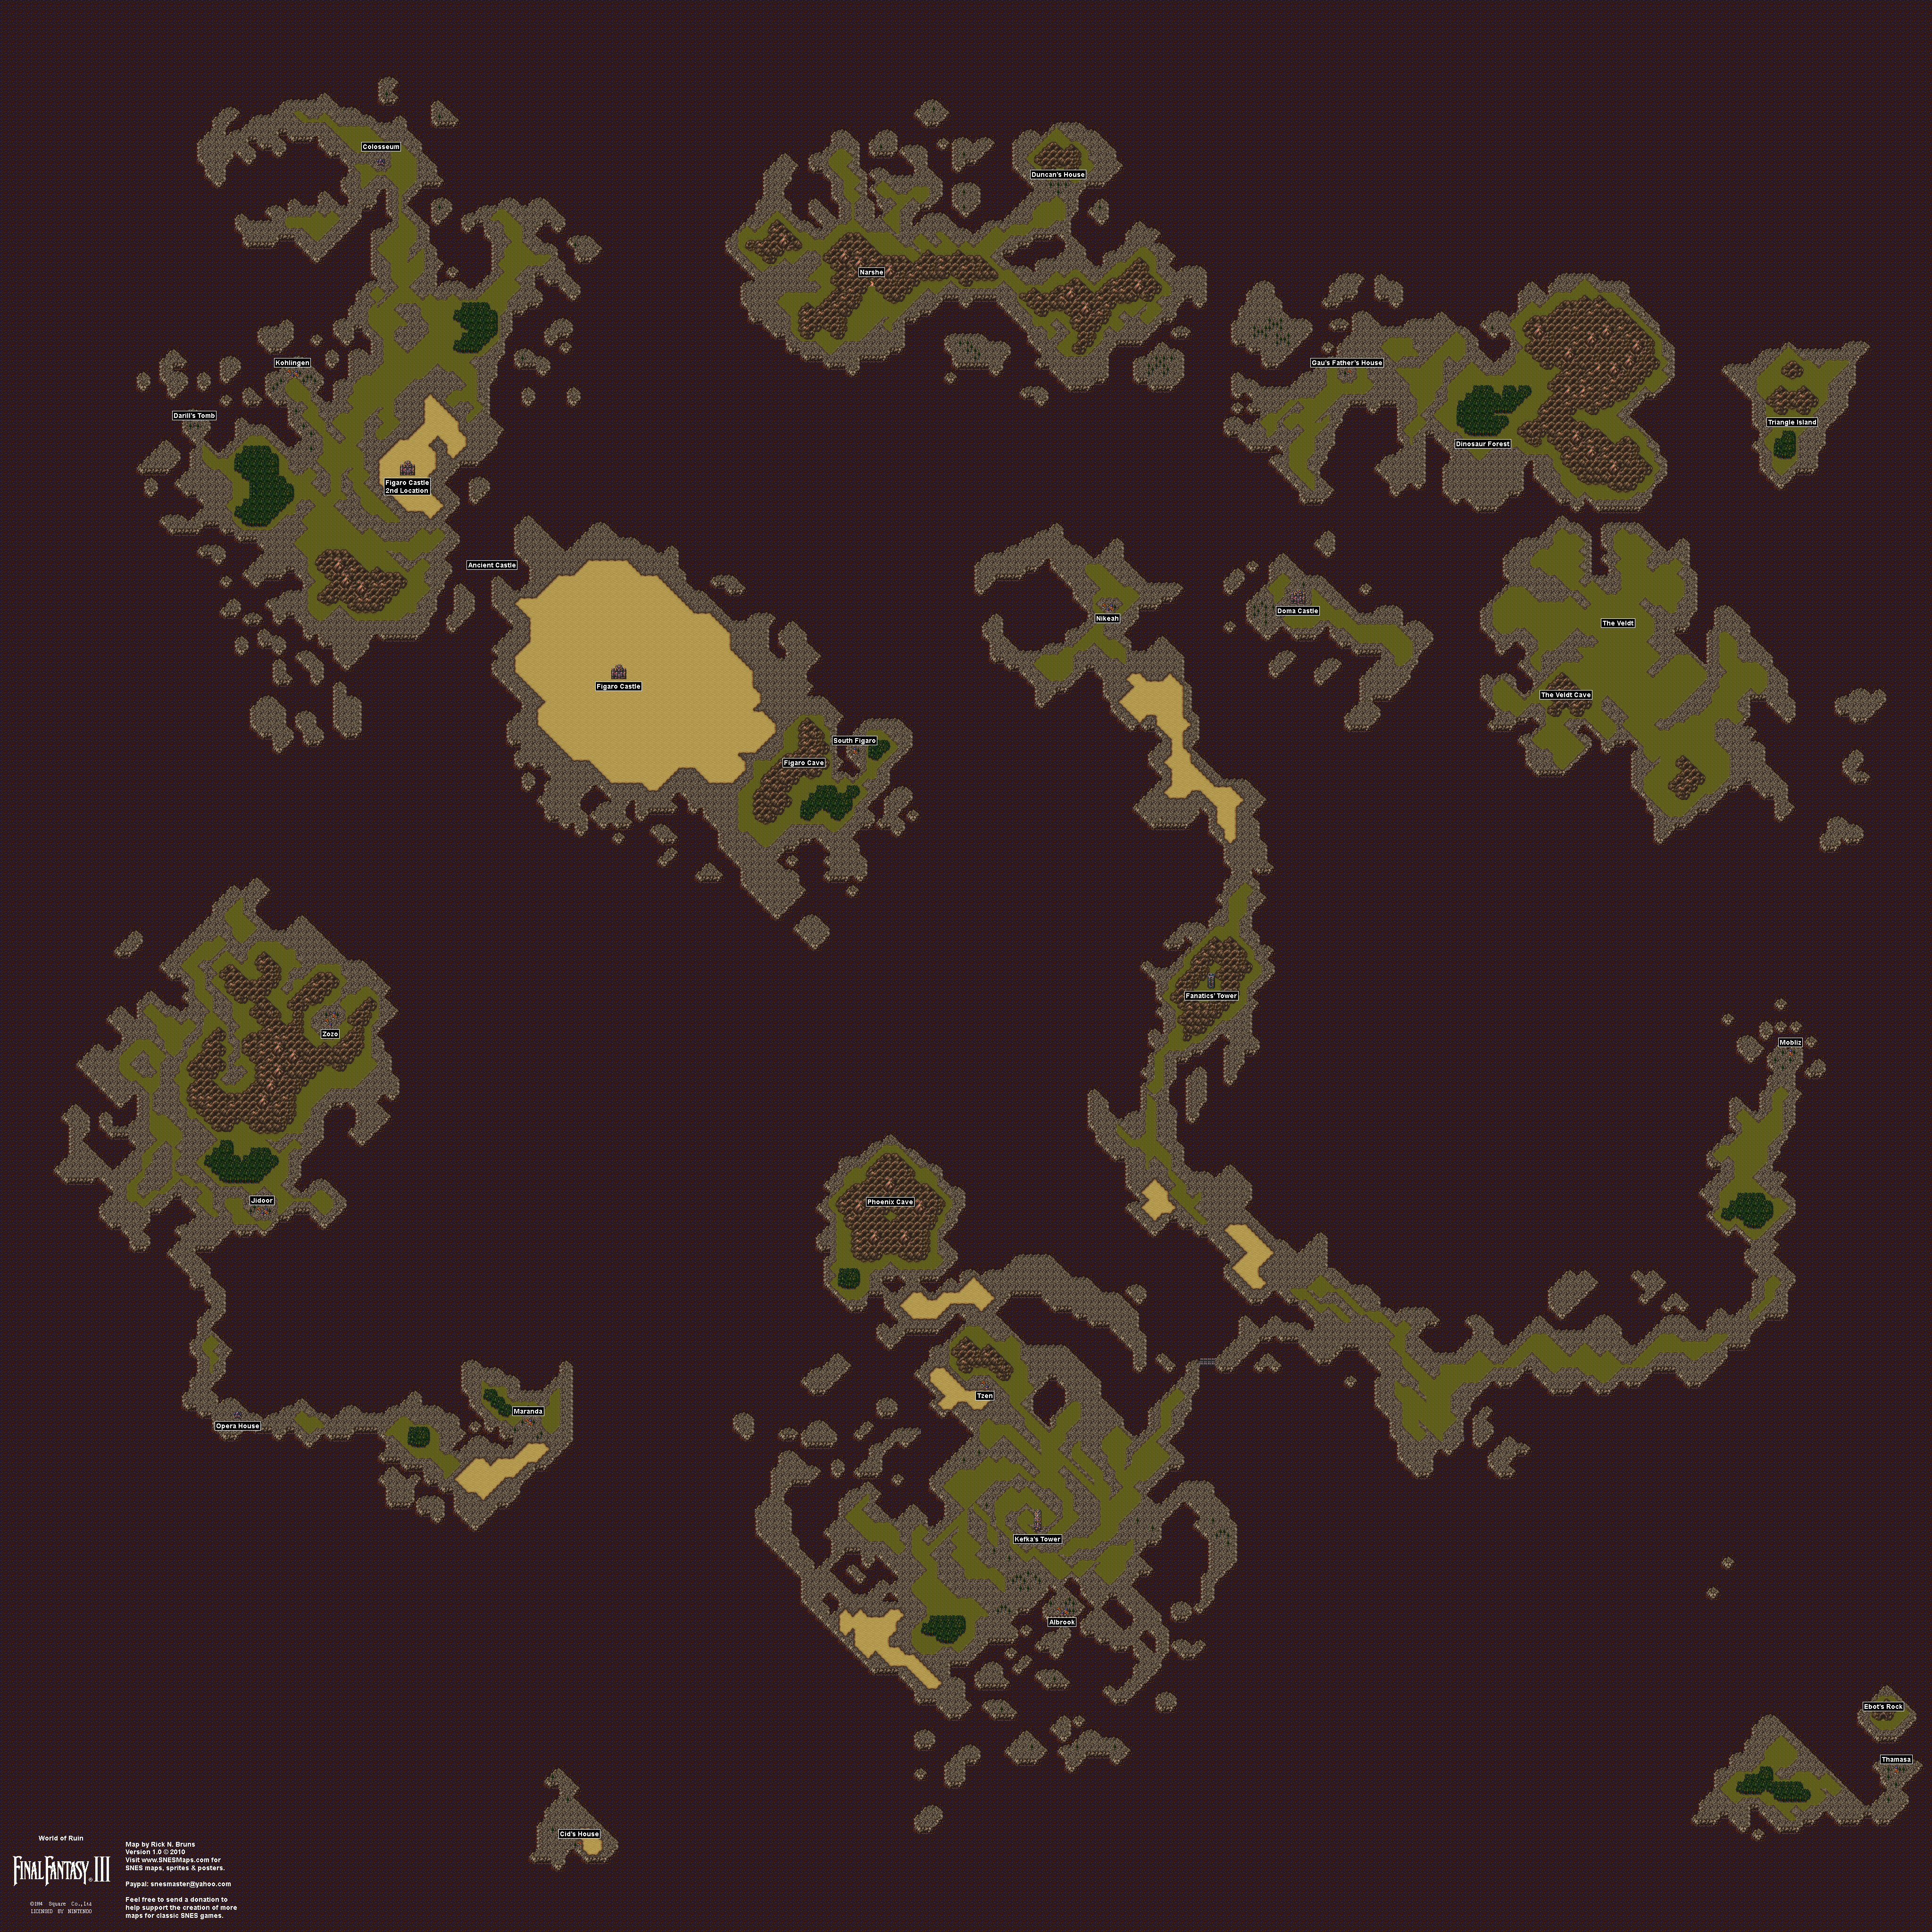 Mapas de mundos da fantasia - Final Fantasy VI - World of Ruin